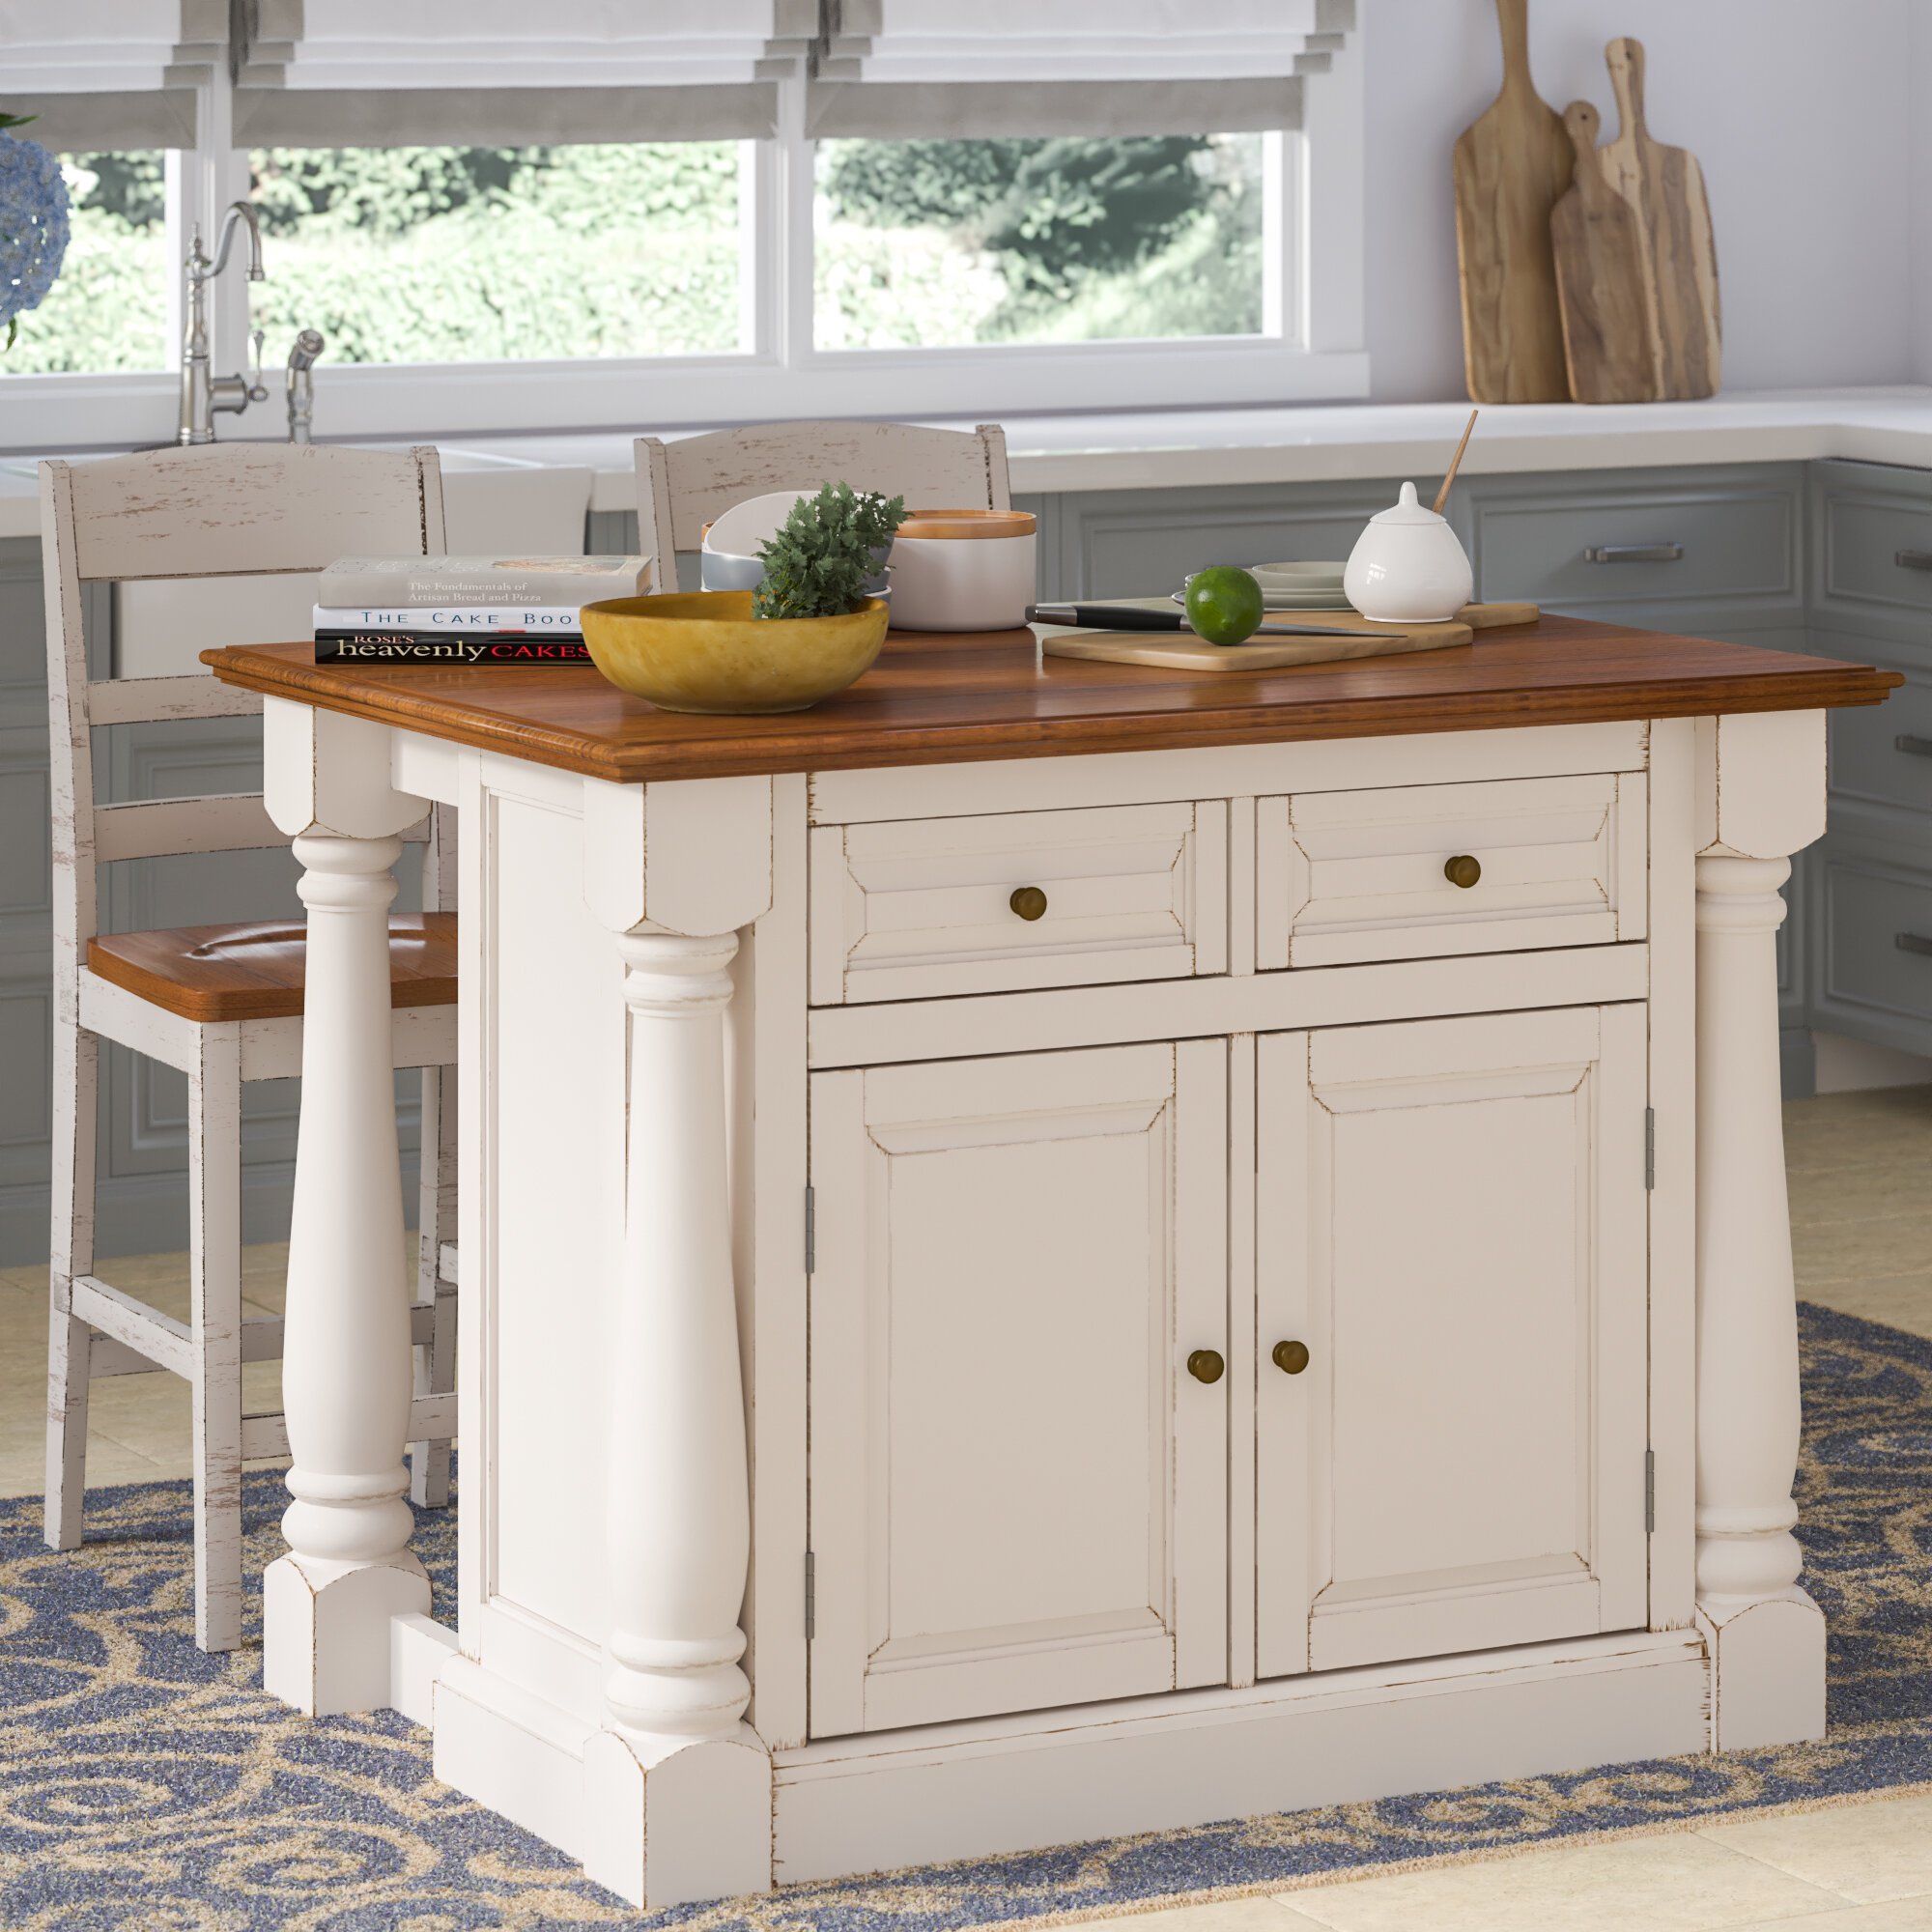 Kitchen Islands With Seating Free Shipping Over 35 Wayfair